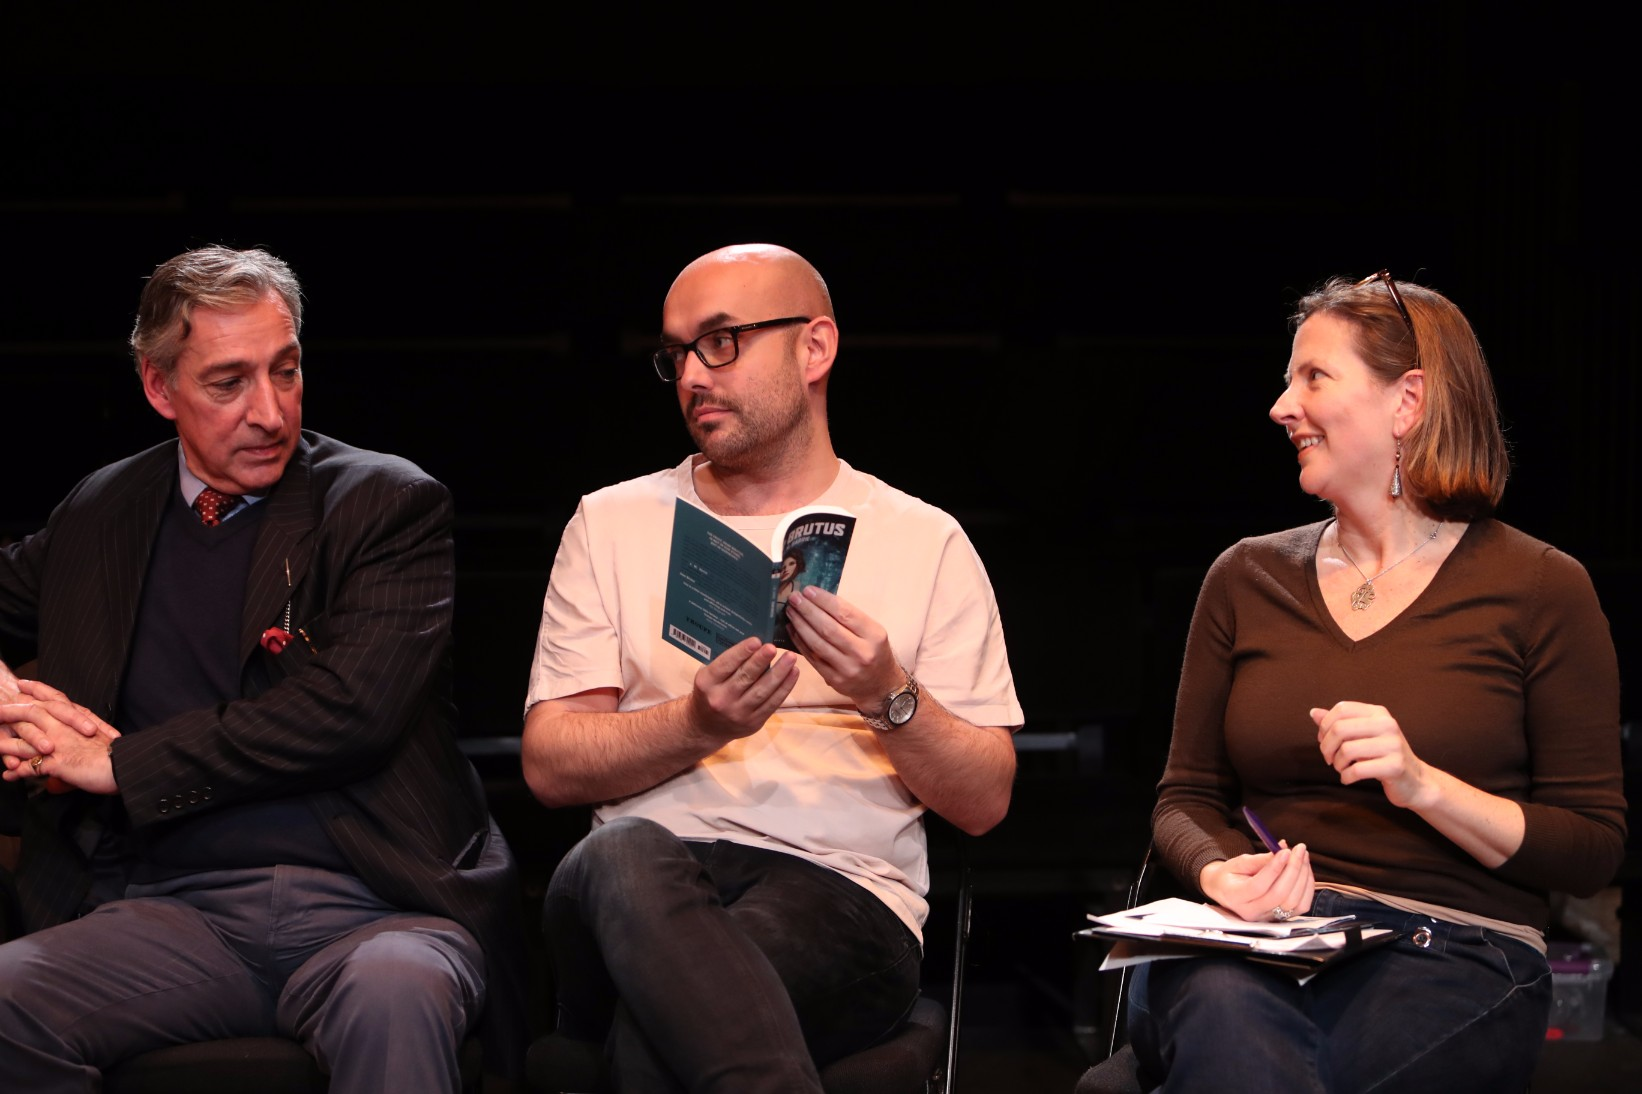 1Dear-Brutus-Q-A-at-the-Southwark-Playhouse-05.12-32